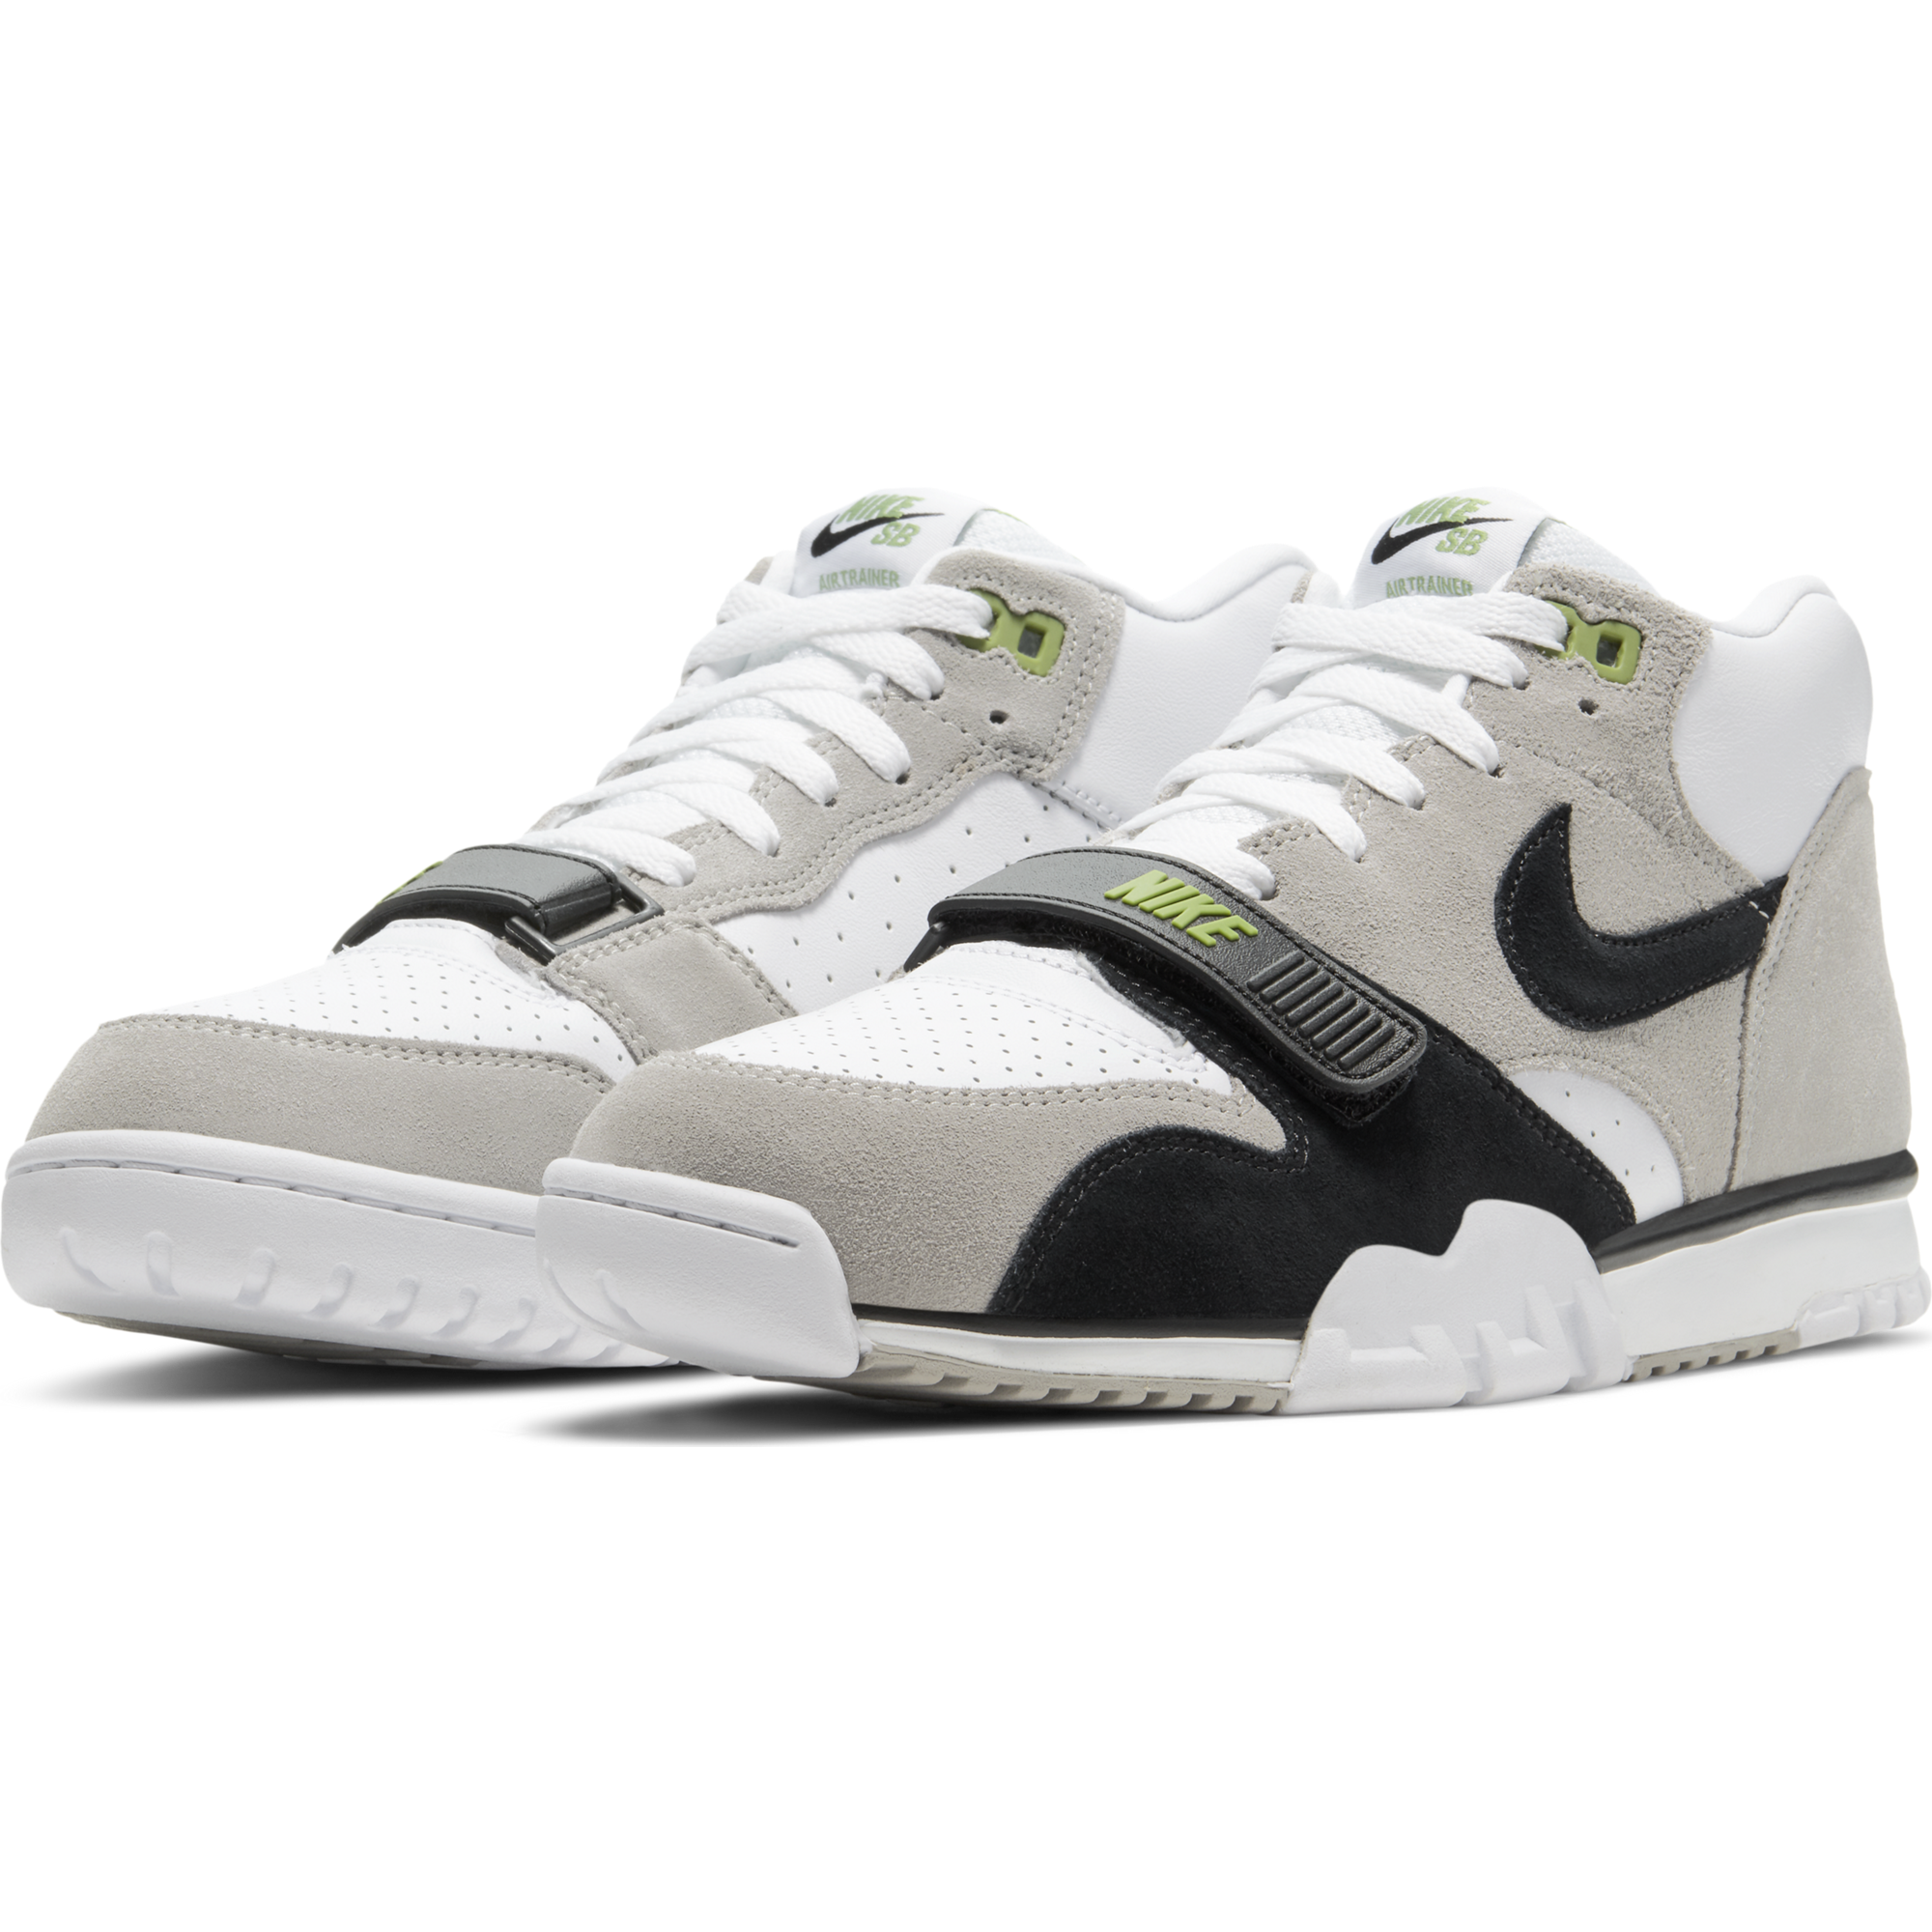 NIKE SB AIR TRAINER I ISO CW8604-001 抽選フォーム